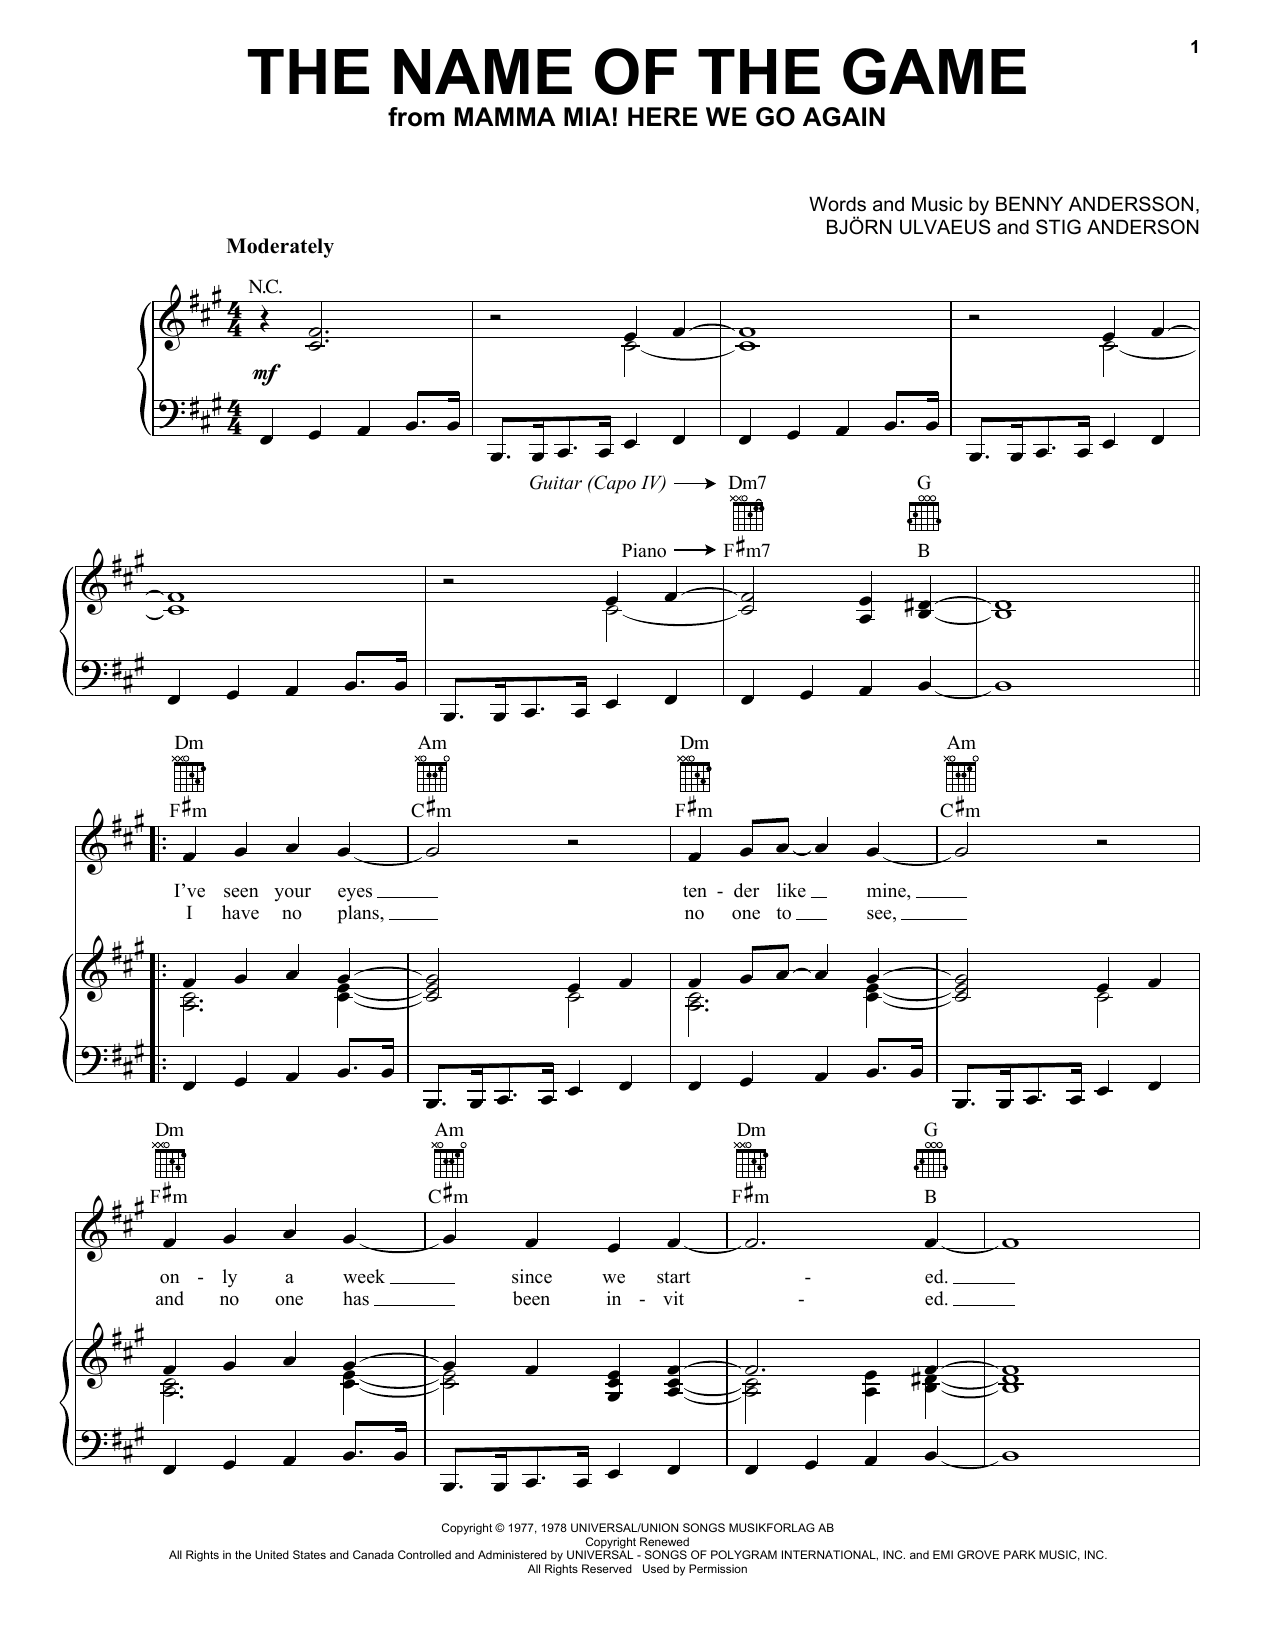 Abba The Name Of The Game From Mamma Mia Here We Go Again Sheet Music Notes Chords Score Download Printable Pdf In 2020 Sheet Music Notes Sheet Music Music Notes